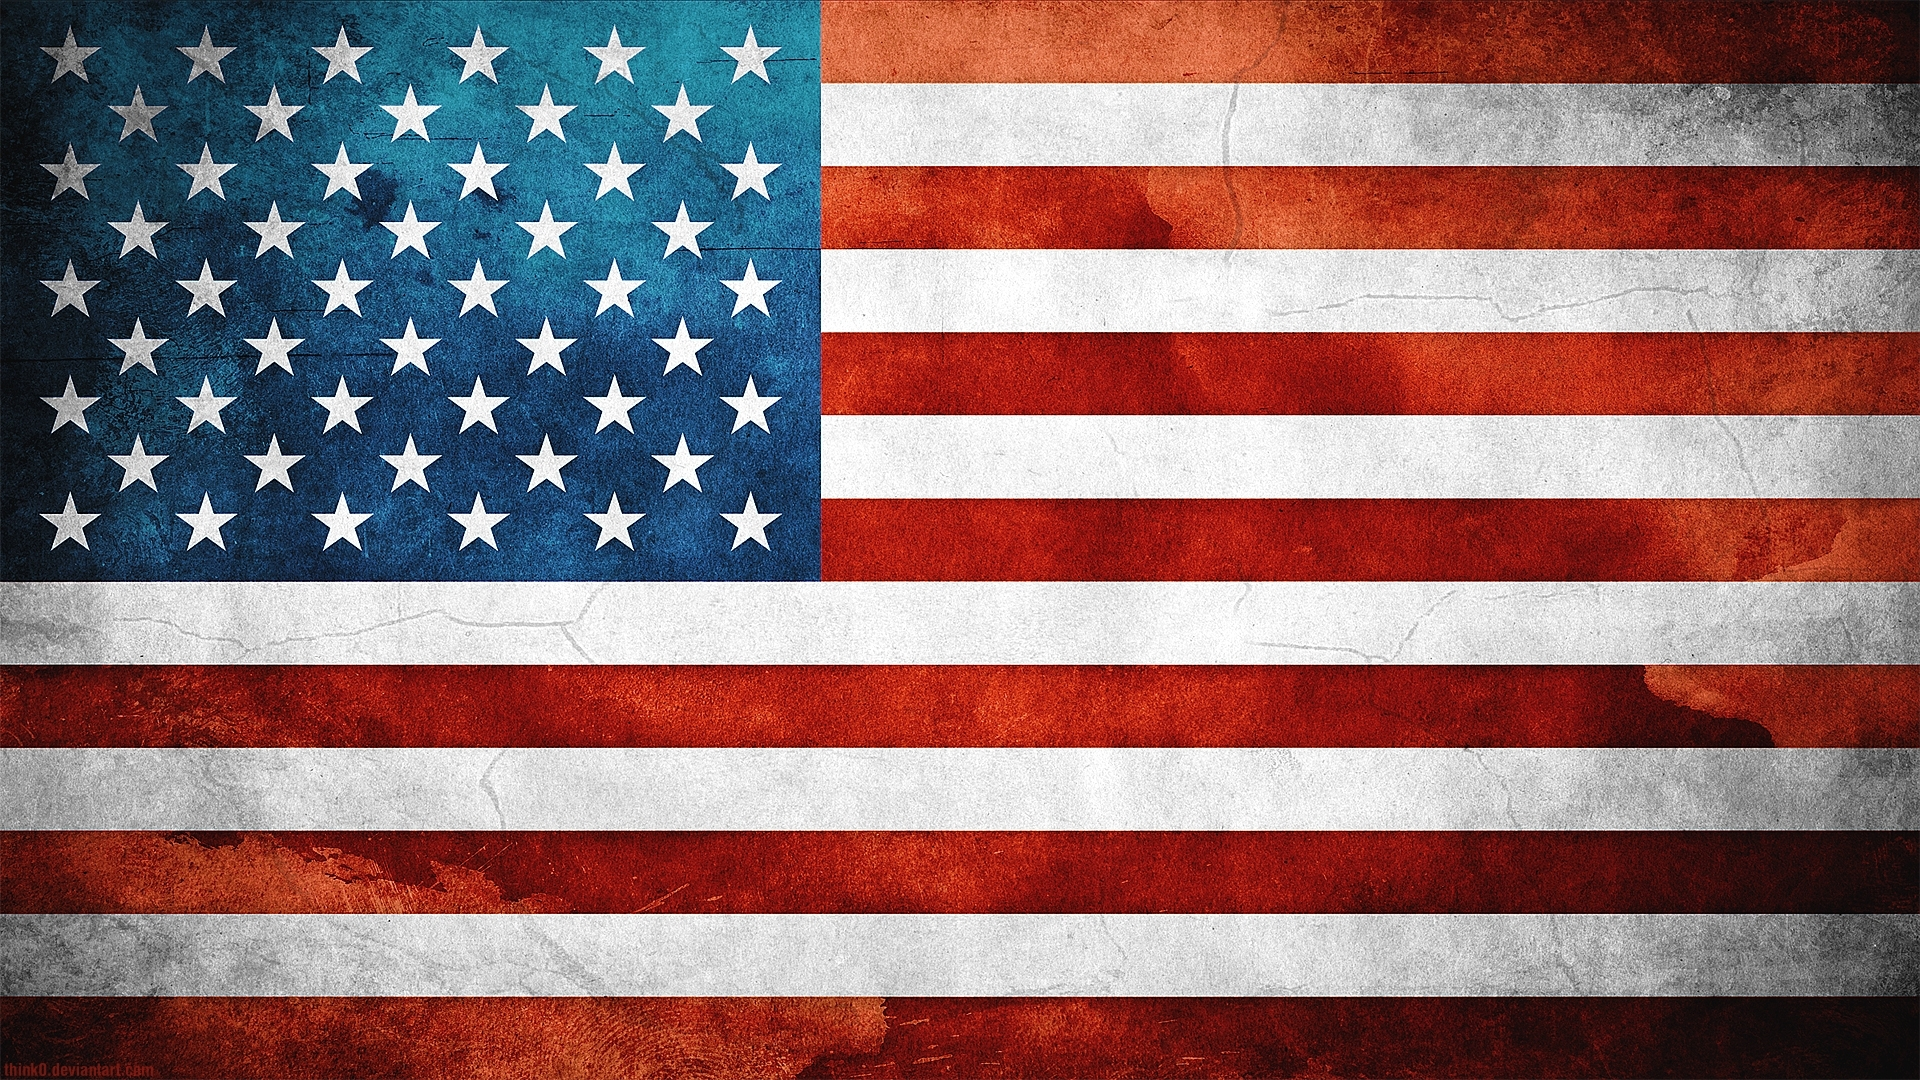 american flag full hd wallpaper and background image   1920x1080